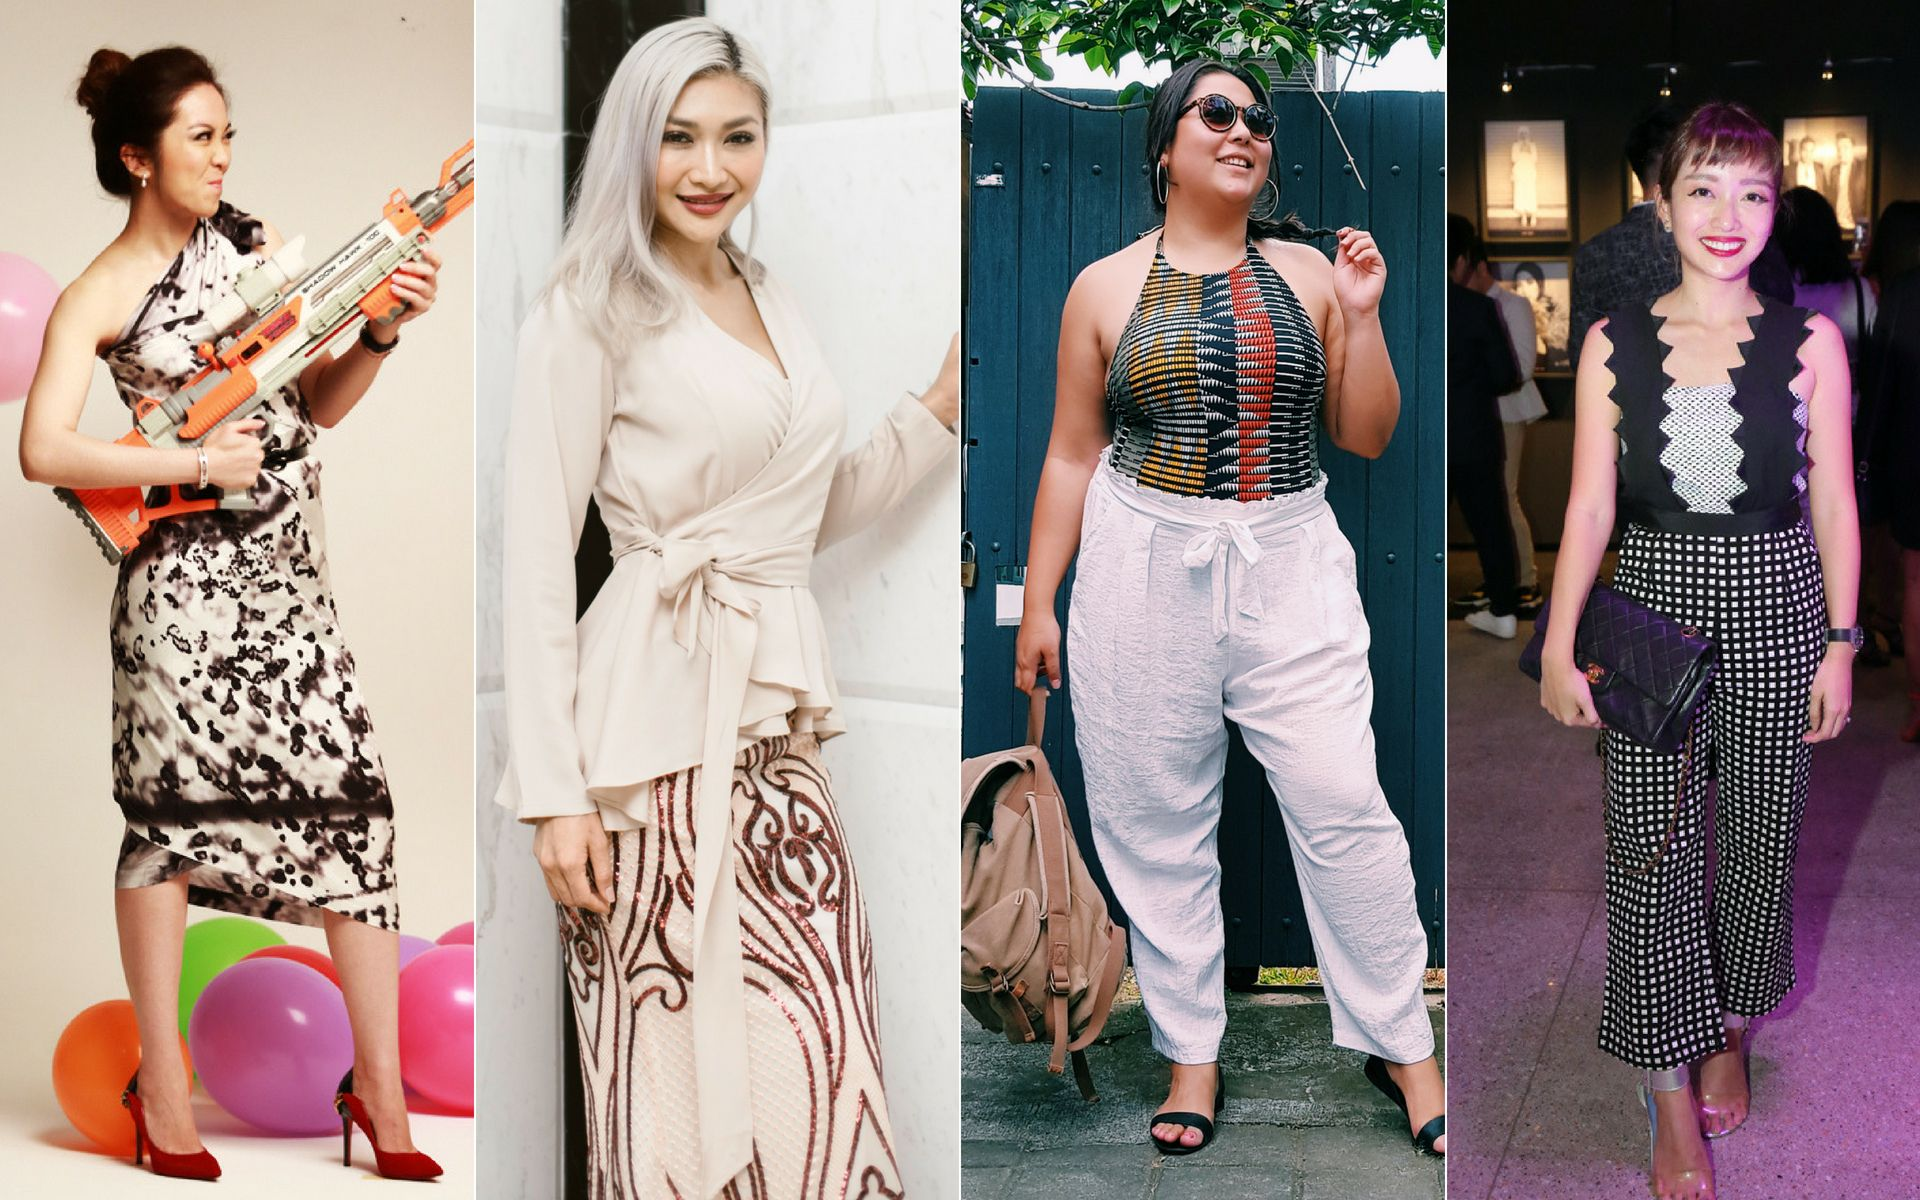 6 Fashion-Savvy Females Get Real About Body Positivity & Loving Their Unique Sizes